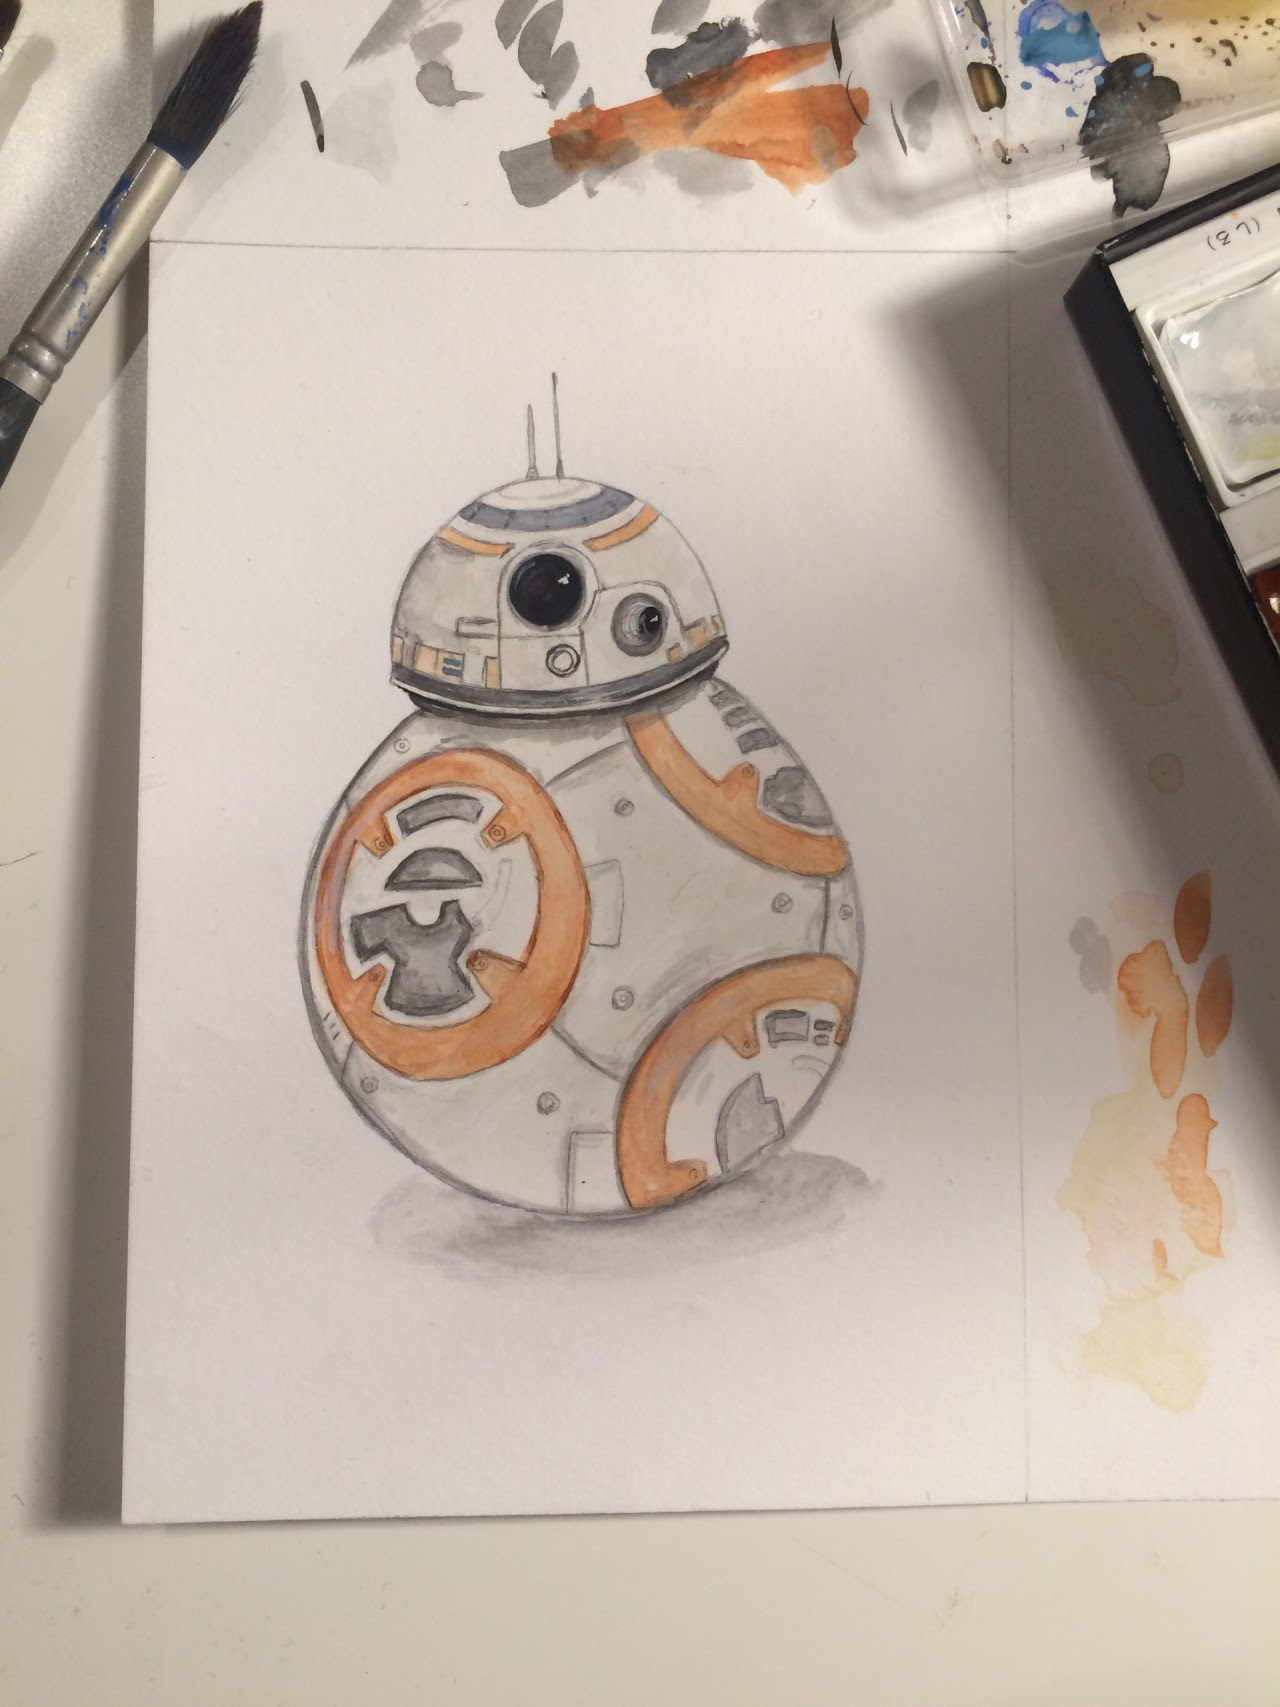 Watercolor painting of BB-8 from The Force Awakens